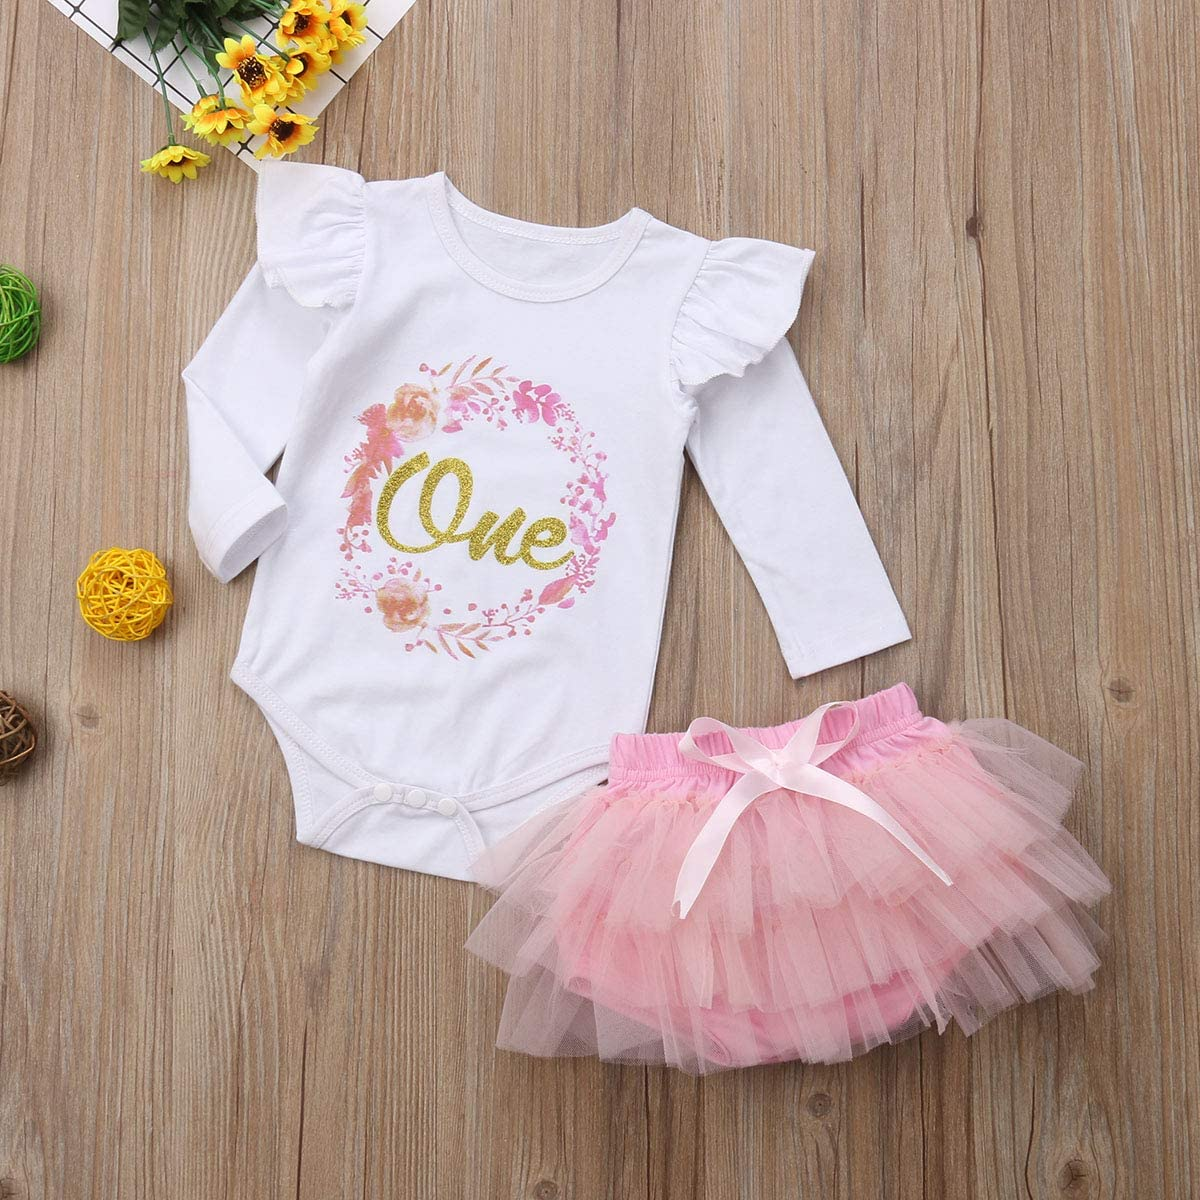 3PCS Newborn Baby Girl 1st Birthday Clothes Floral Printed Romper Tulle Tutu Skirt with Headband Costumes Outfits Set